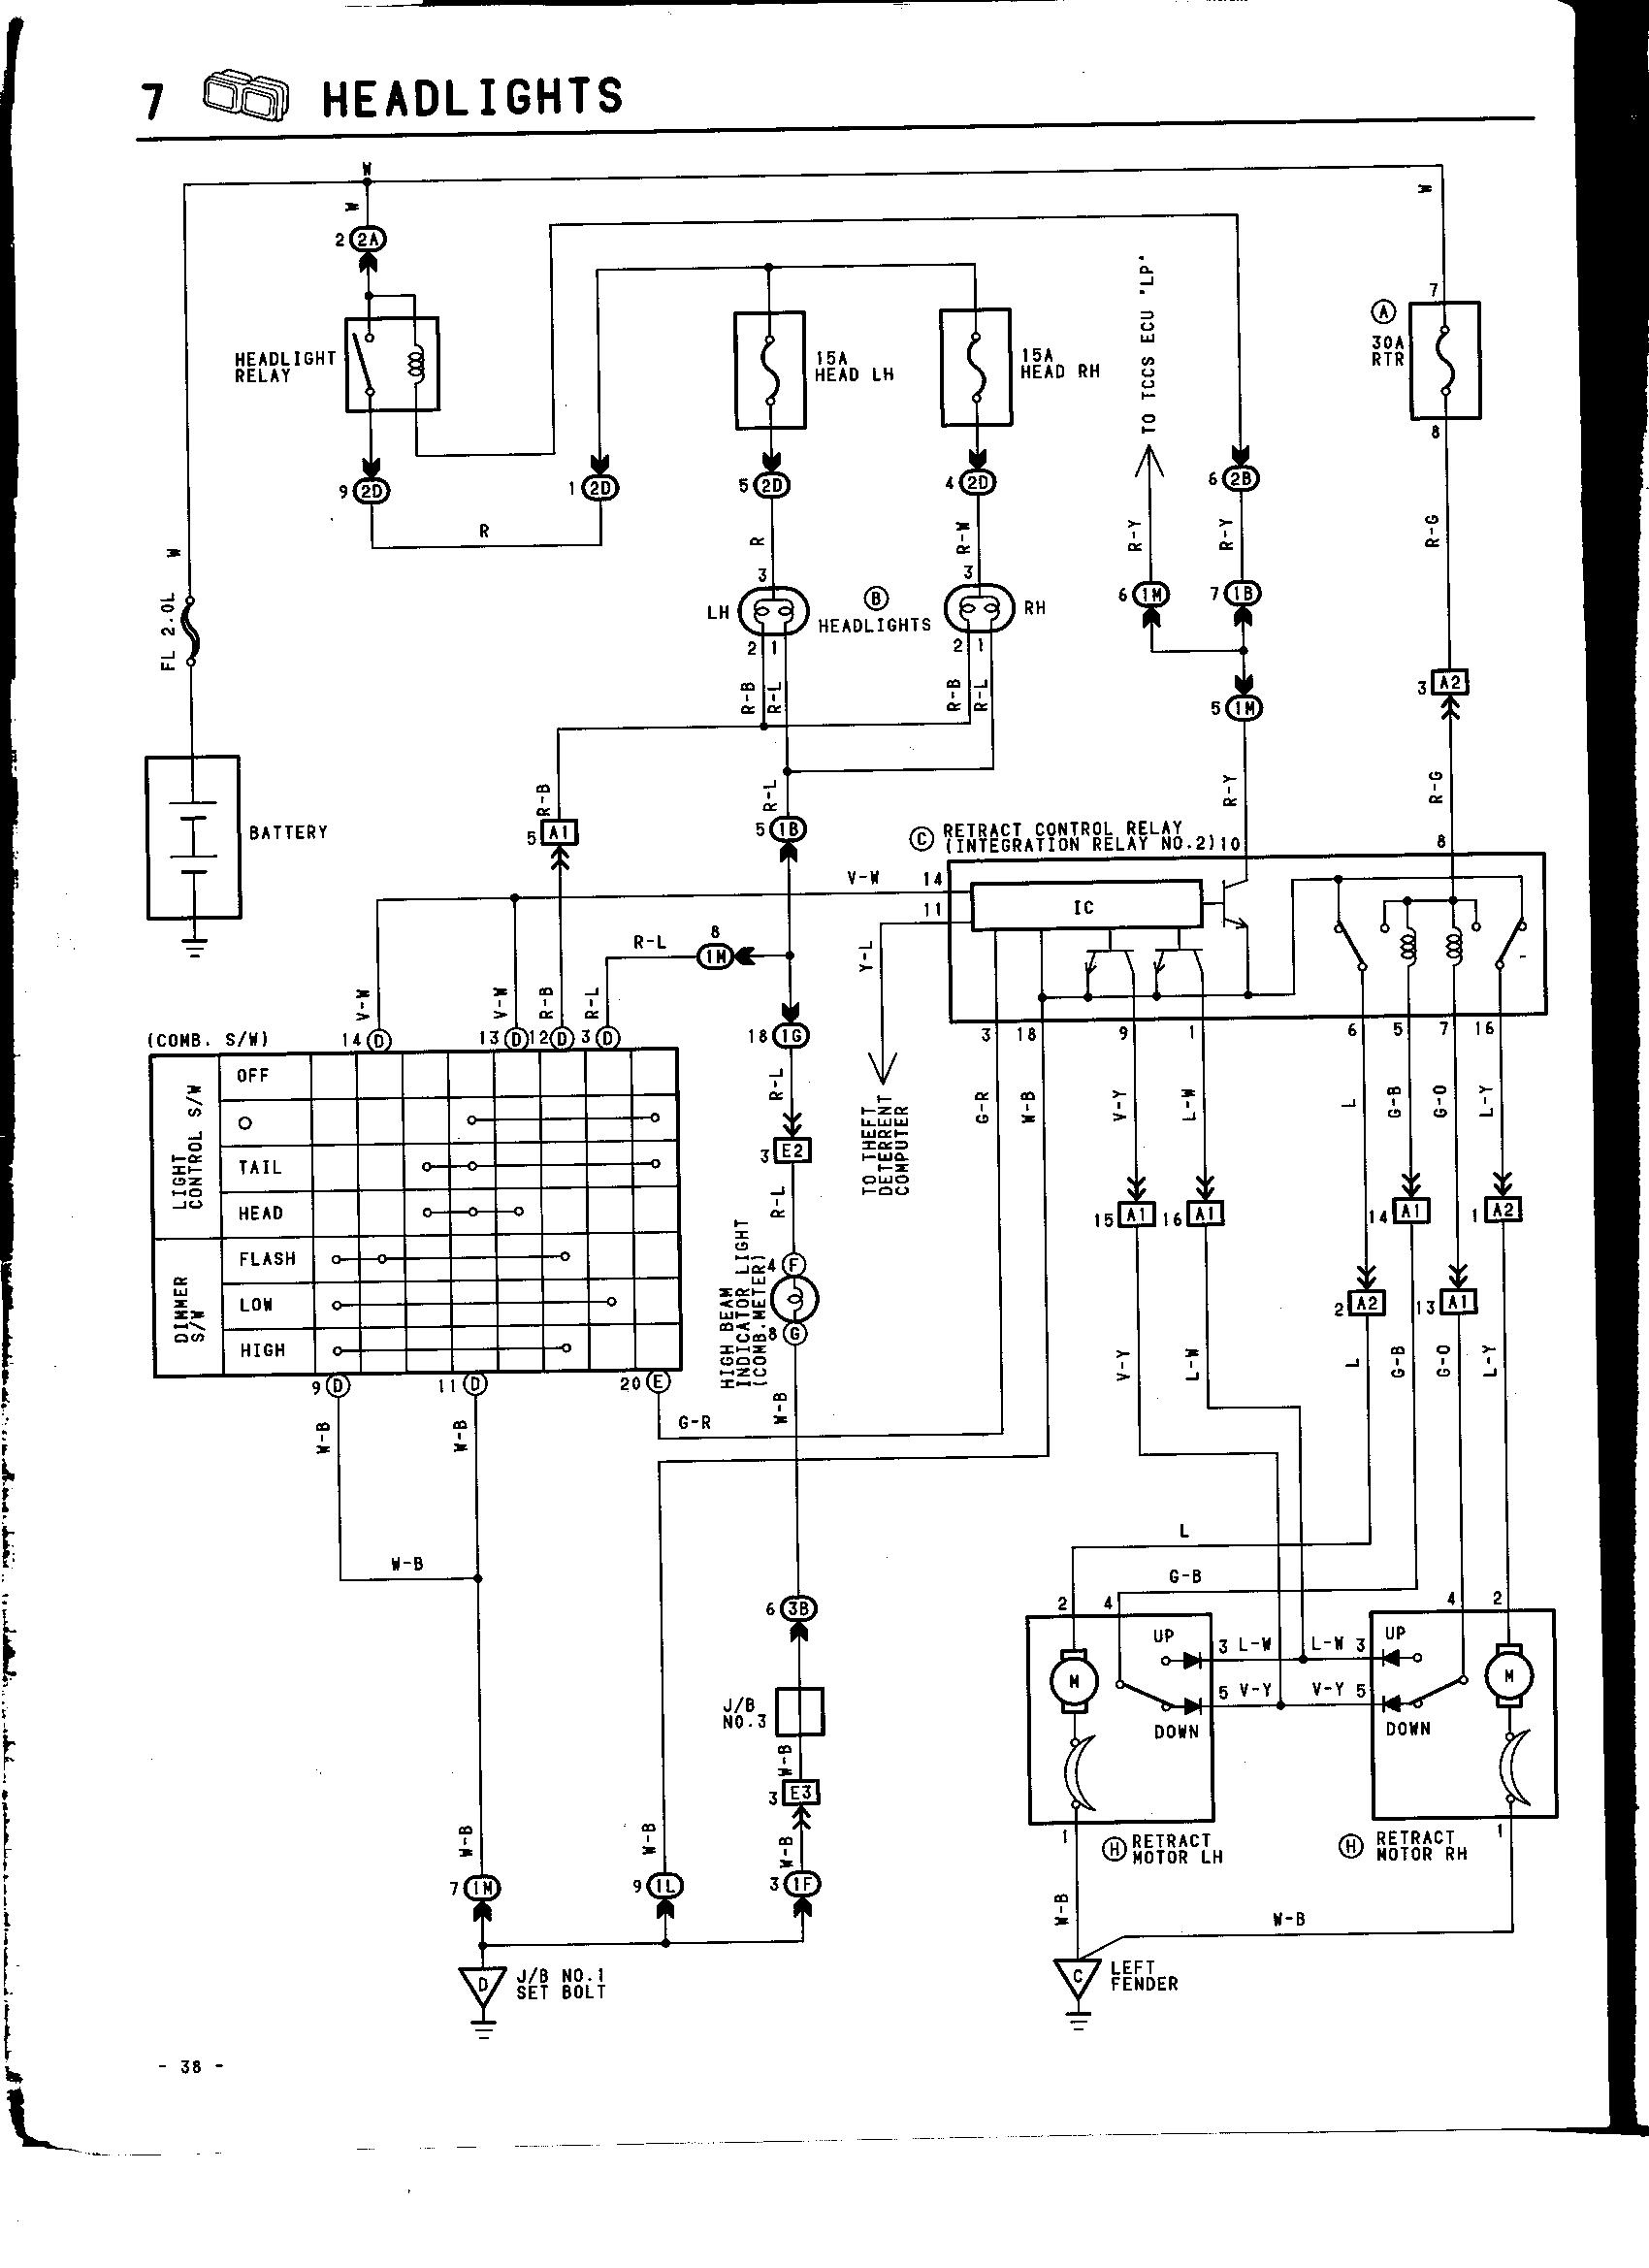 Exploded View Of Integration Relay